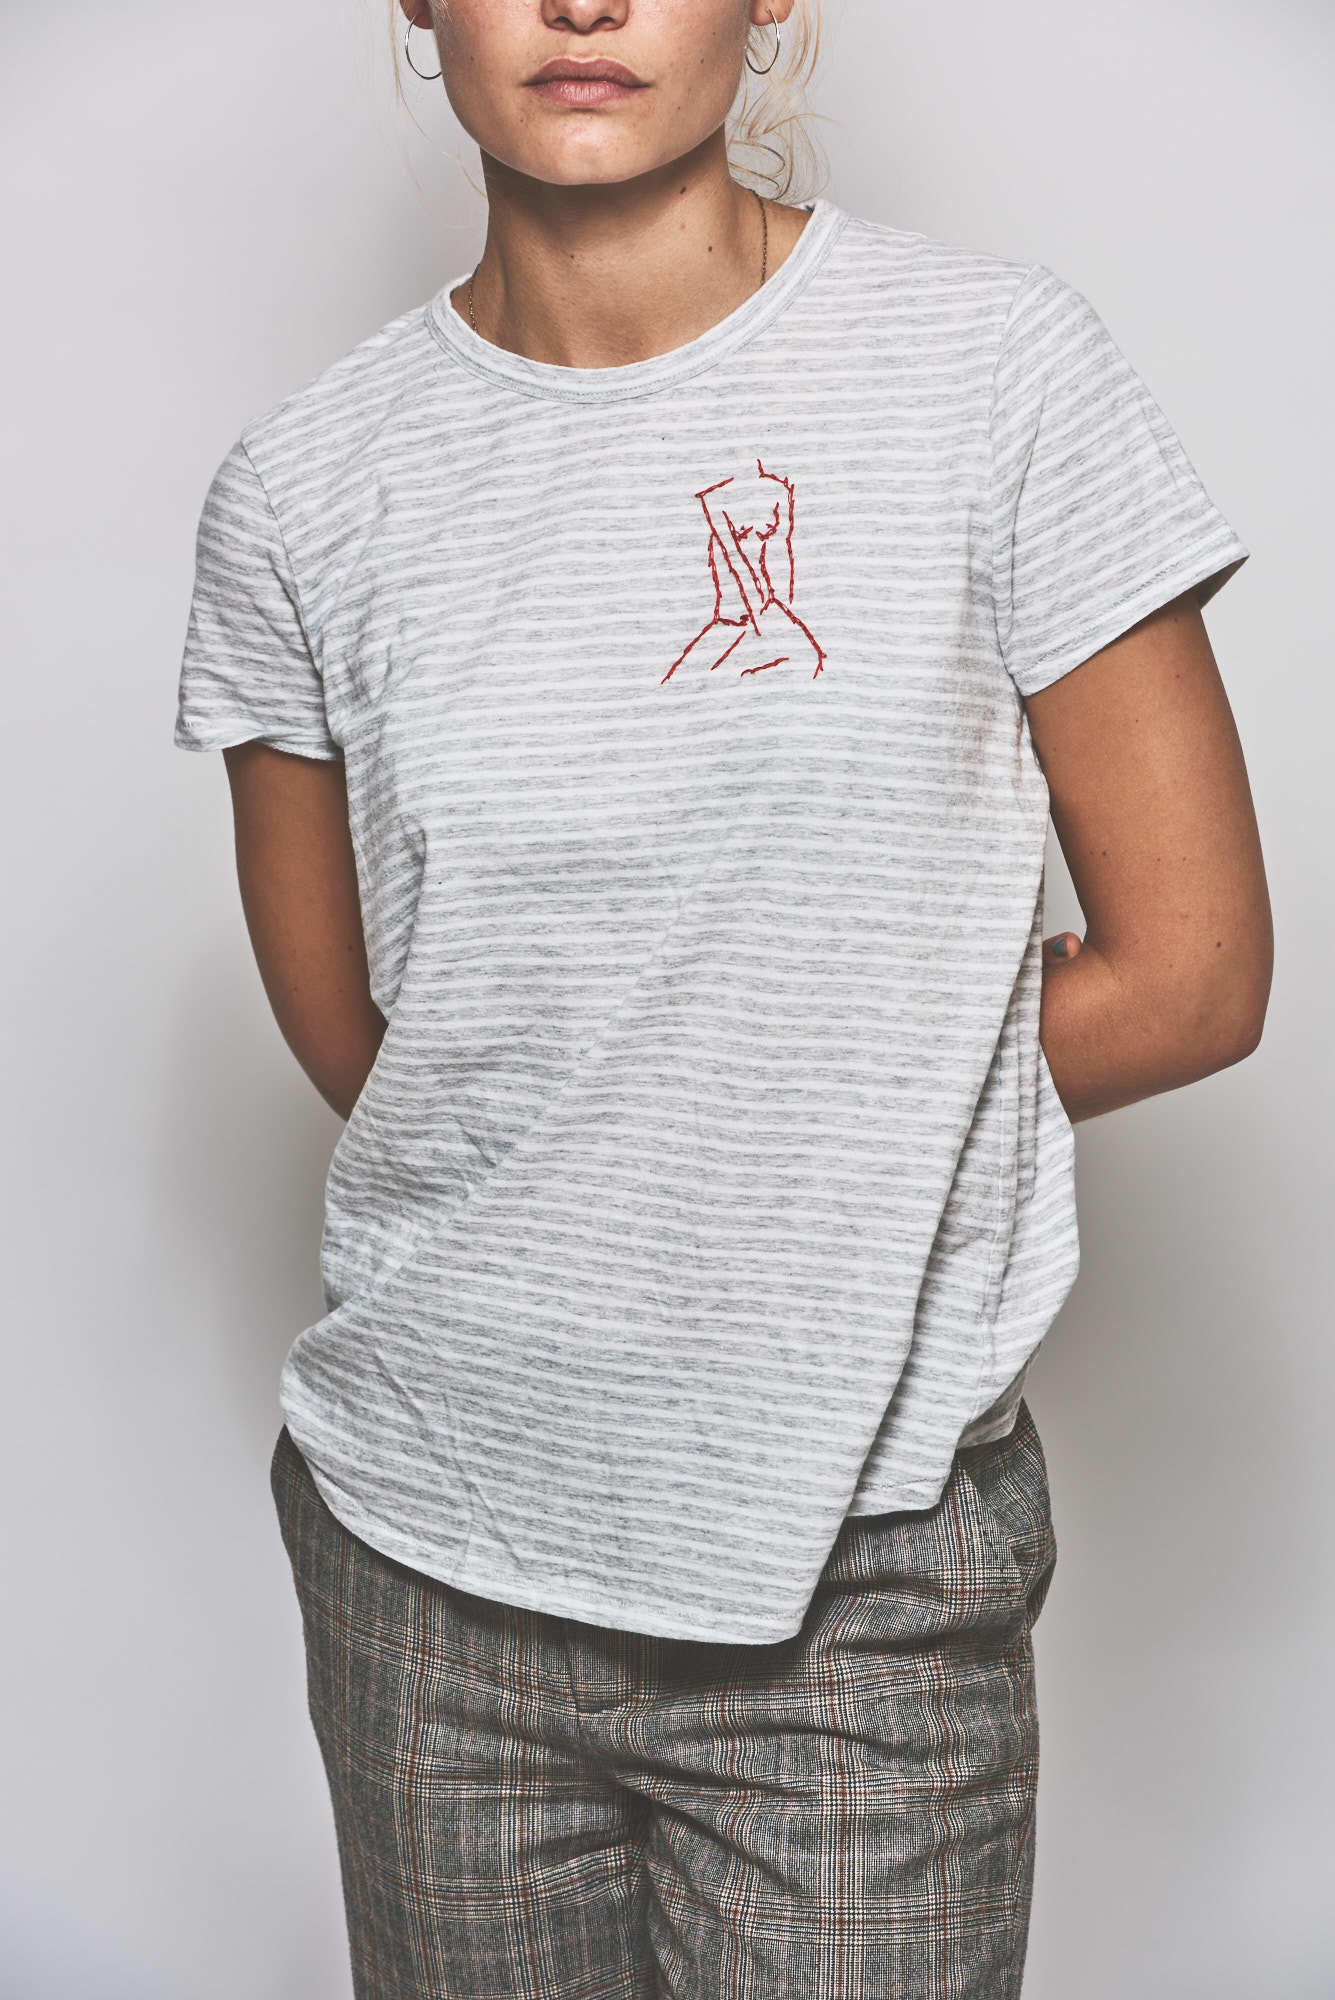 The Striped Red Sitting Woman T-Shirt 69699